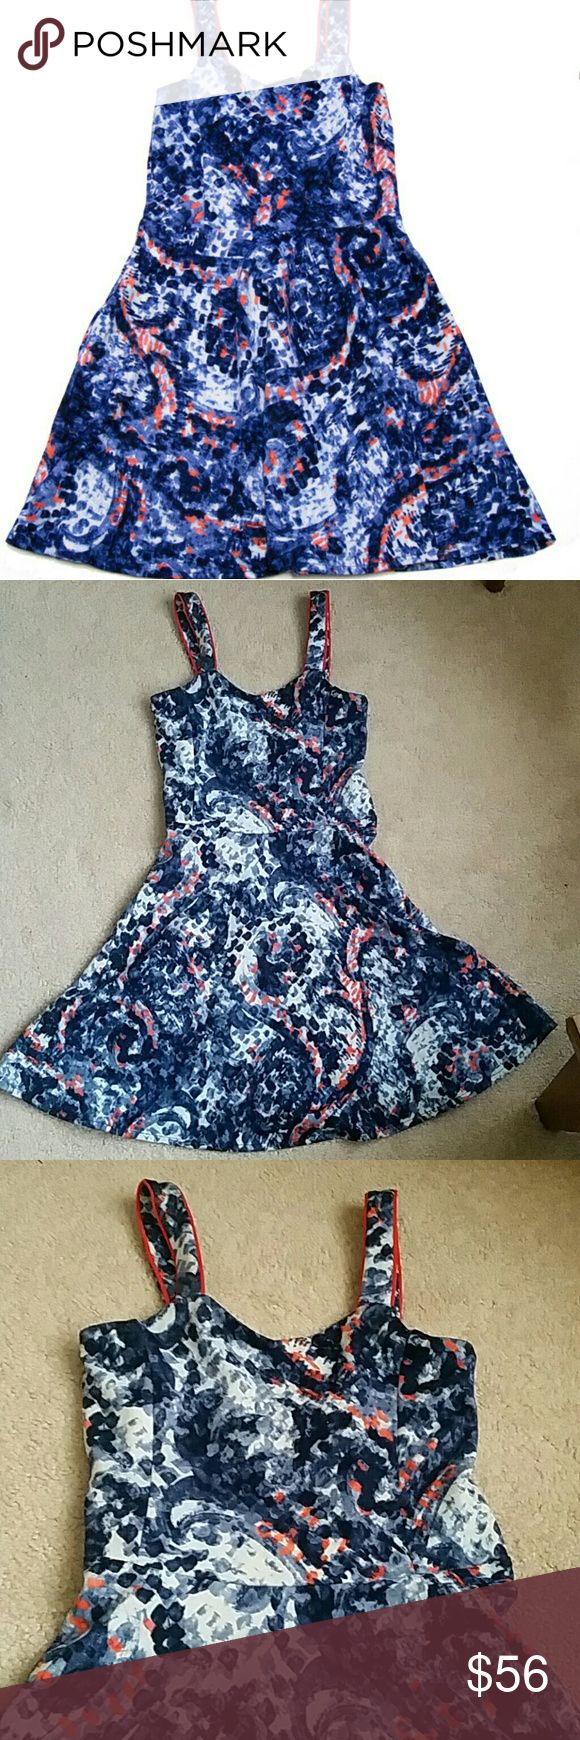 Tween Girls Sally Miller Couture Skater Dress Beautiful Girls/tween dress size large / 12 - new with tags from bloomingdale's  *as seen on Maddie Ziegler from dance moms Bloomingdale's Dresses